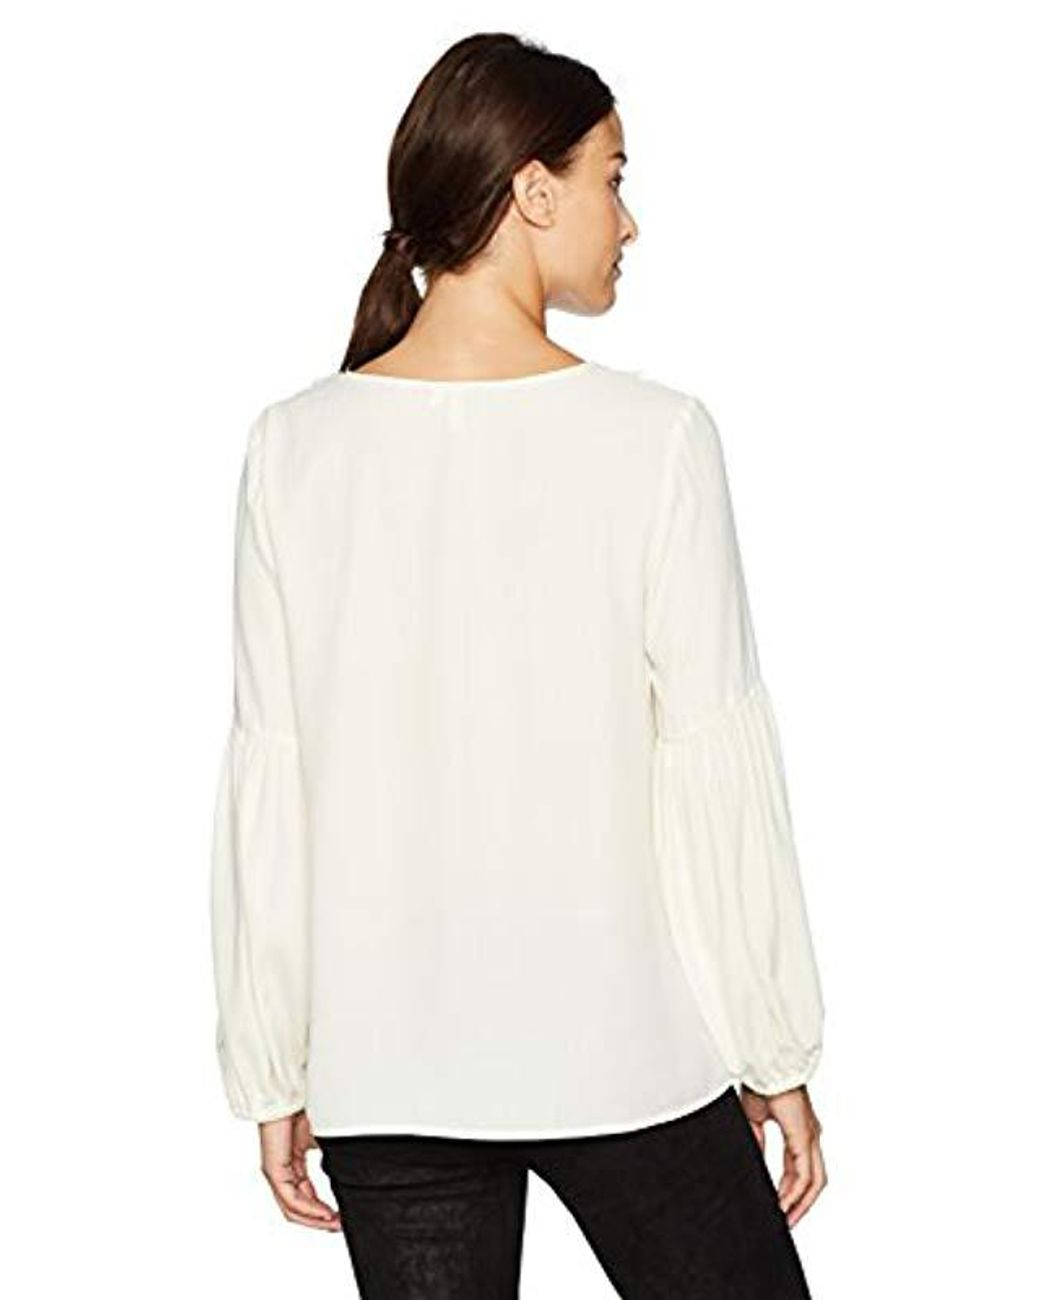 Cromoncent Womens Casual Knitted Cold Shoulder Tops T-Shirt Blouse